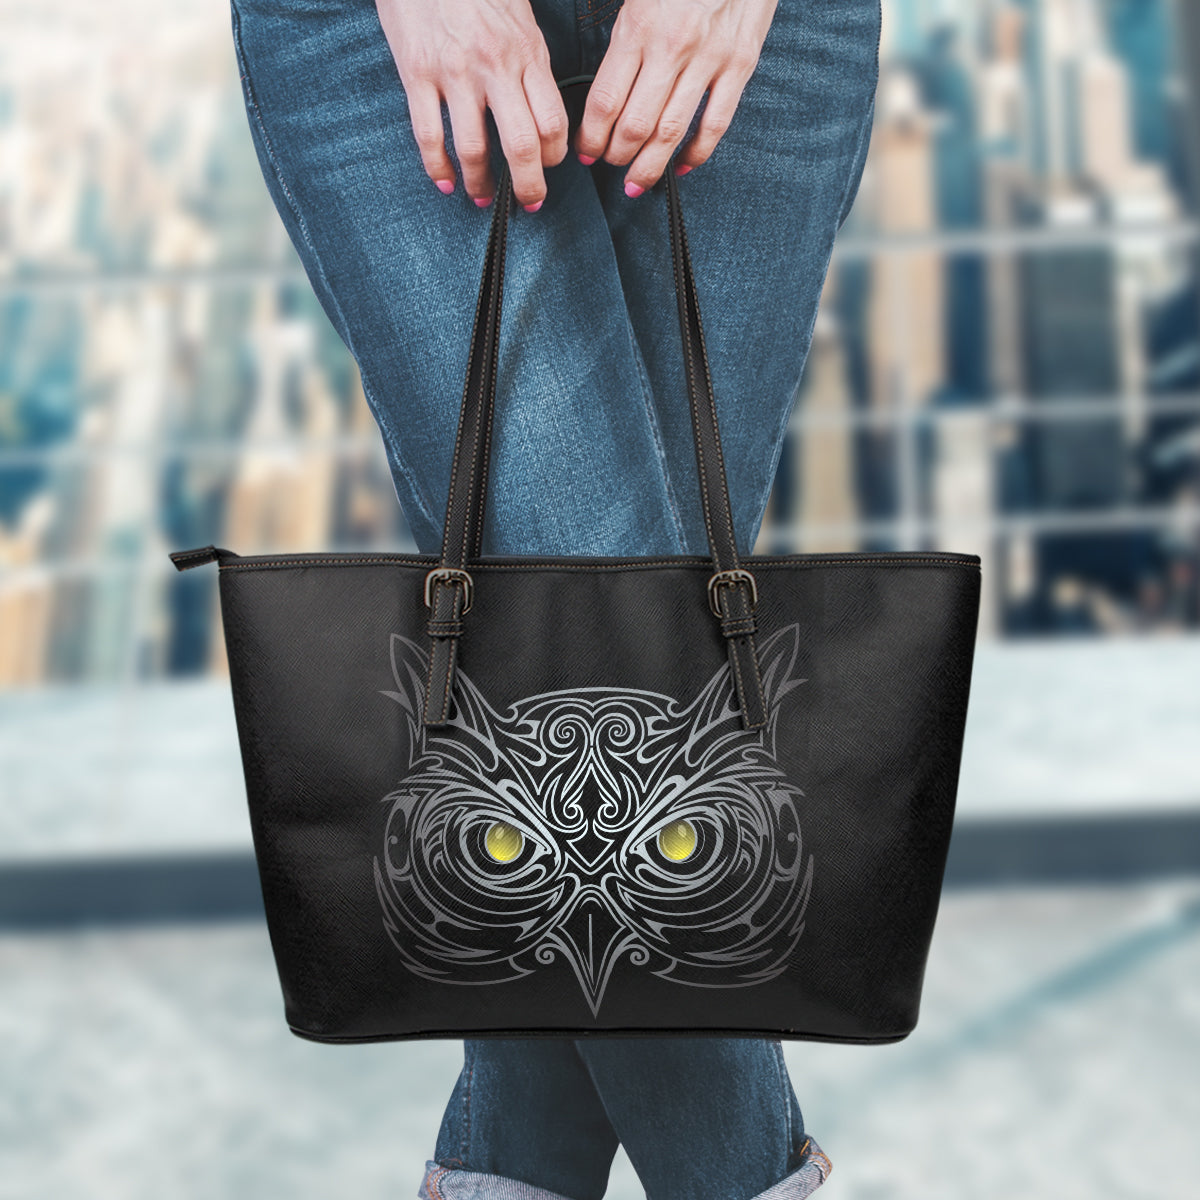 Black Owl Large Leather Tote Bag